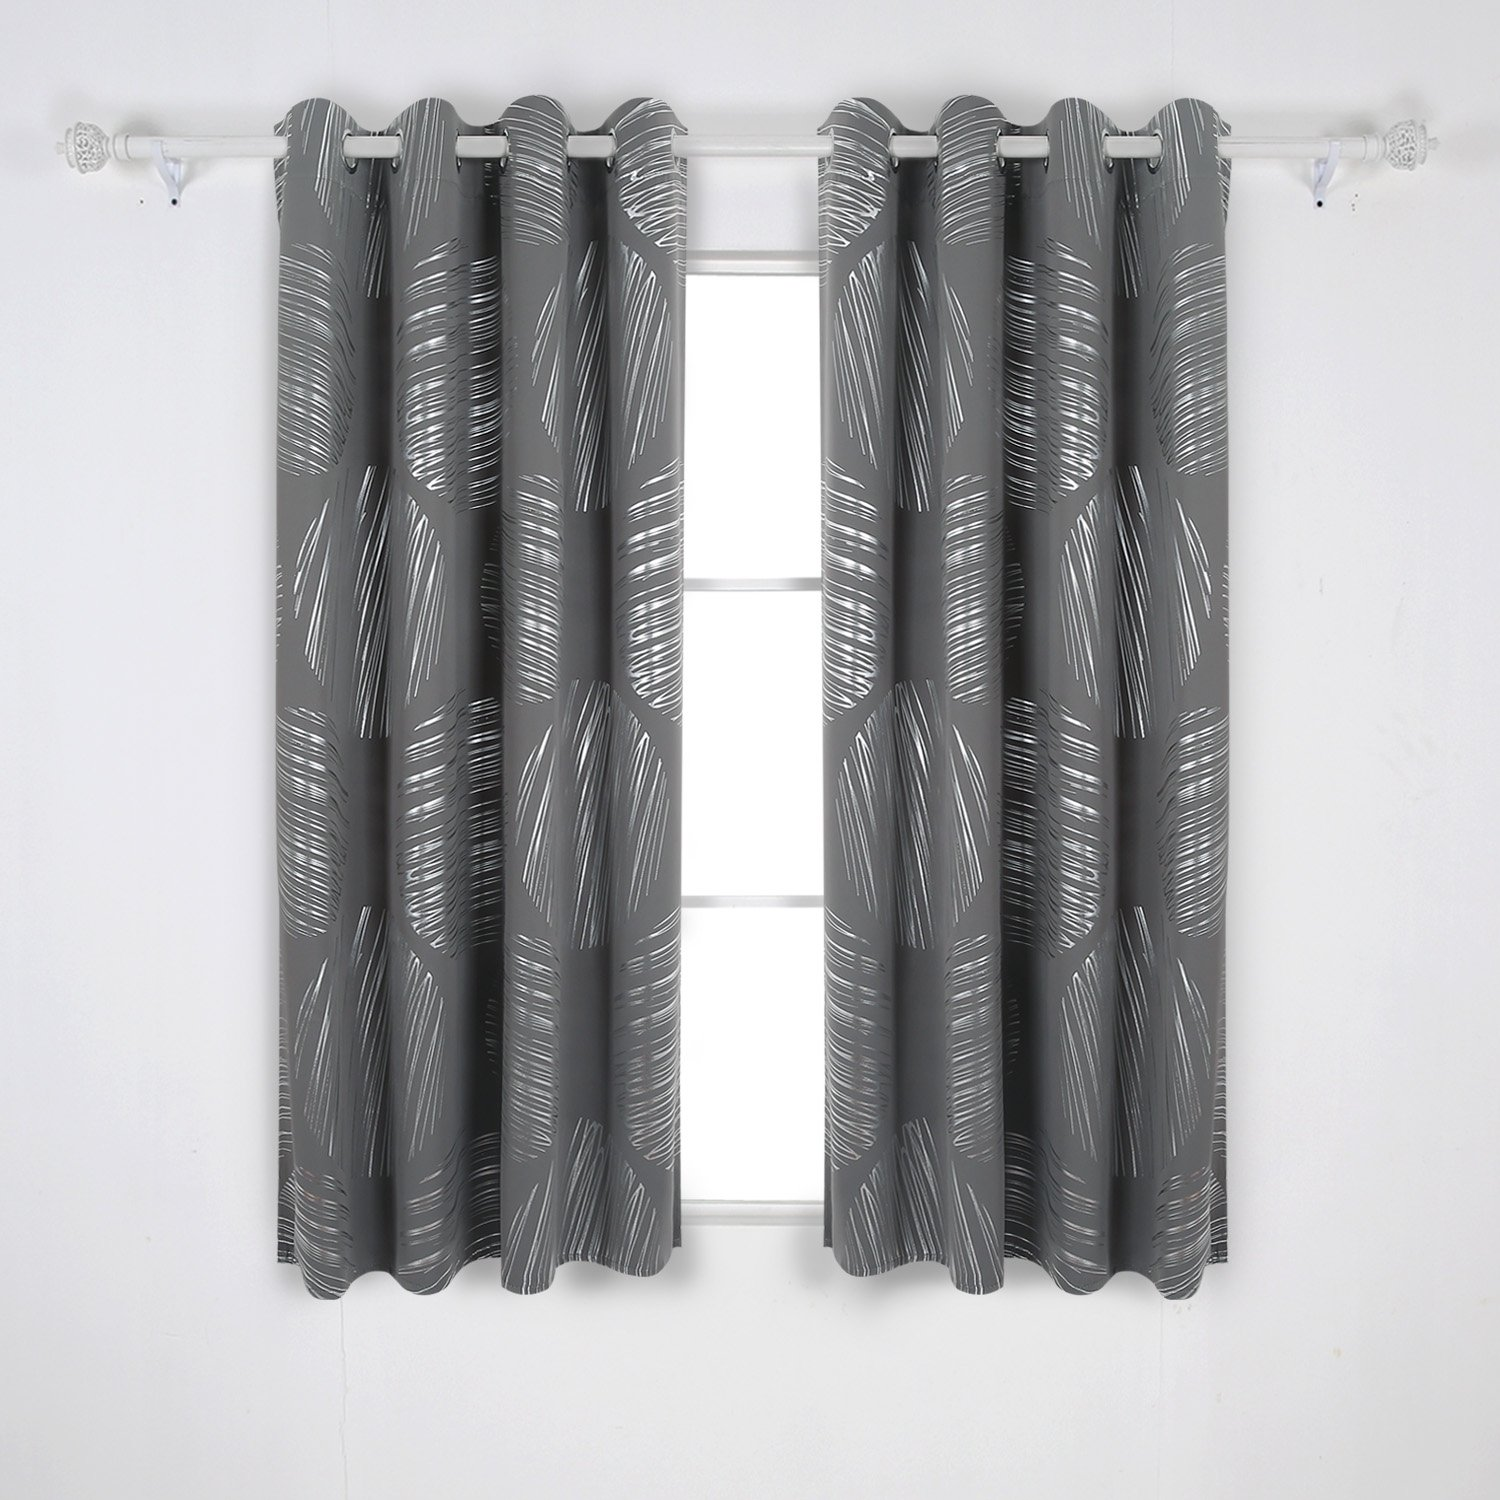 Deconovo Shimmering Foil Print Thermal Insulated Drapes Blackout Grommet Curtains for Boy's Bedroom 52W x 63L Inch 1 Pair Light Gray